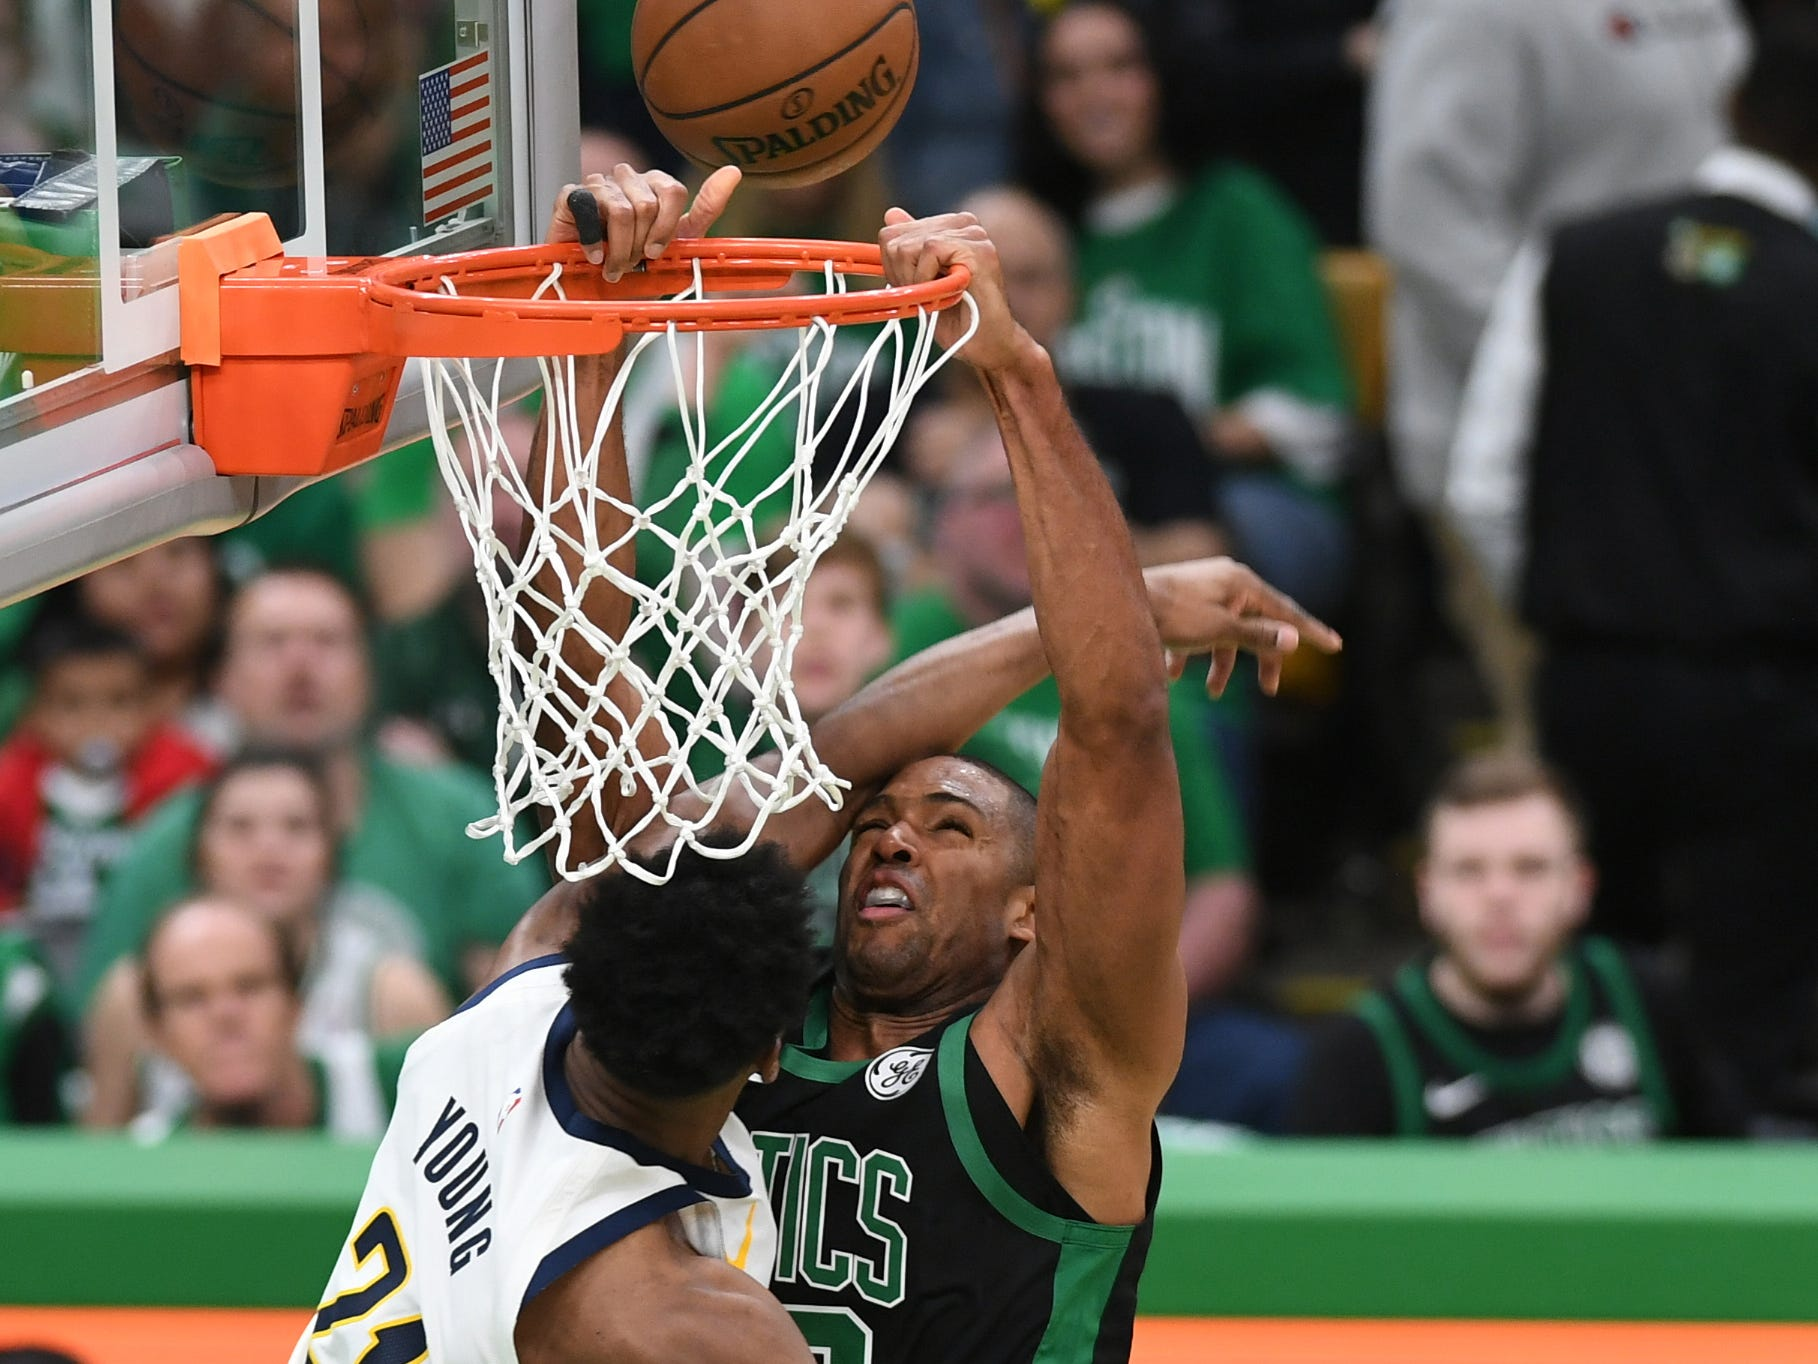 Apr 14, 2019; Boston, MA, USA; Boston Celtics center Al Horford (42) misses a dunk while Indiana Pacers forward Thaddeus Young (21) defends during the first half in game one of the first round of the 2019 NBA Playoffs at TD Garden.